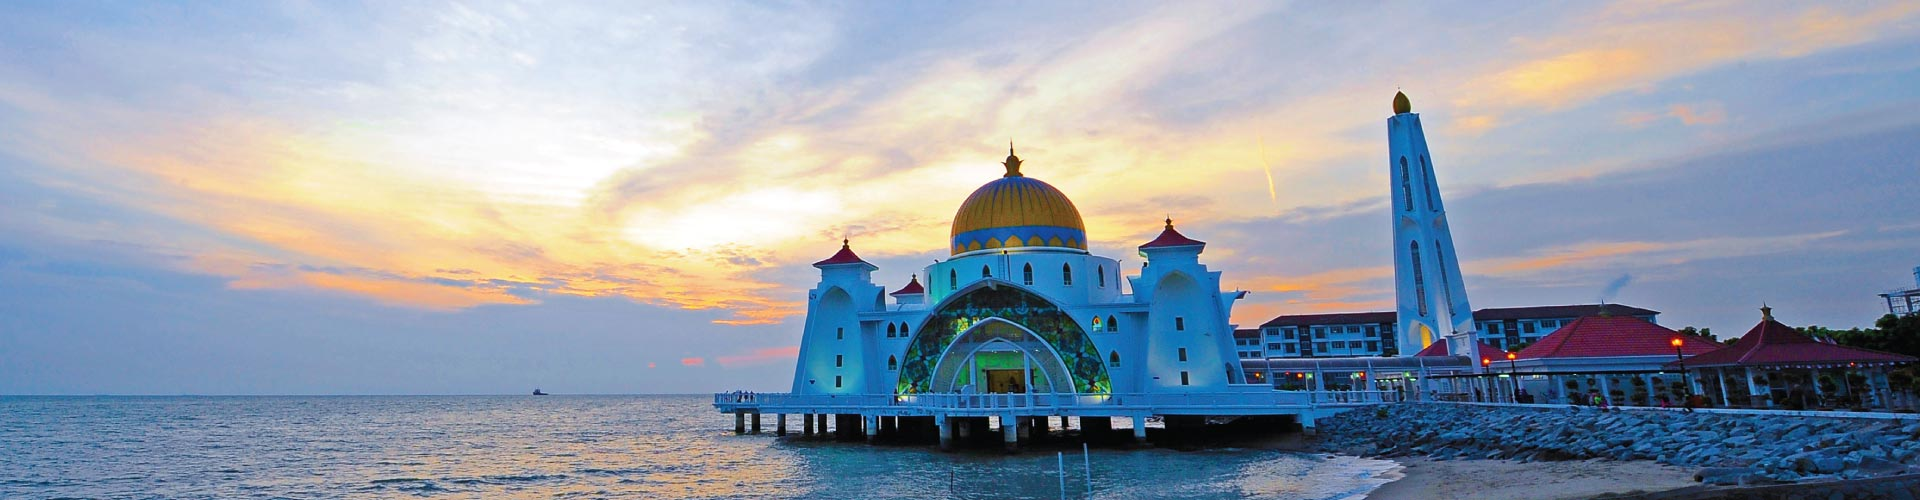 Port Klang- Malacca - Singapore - Port Klang (Costa Cruise)